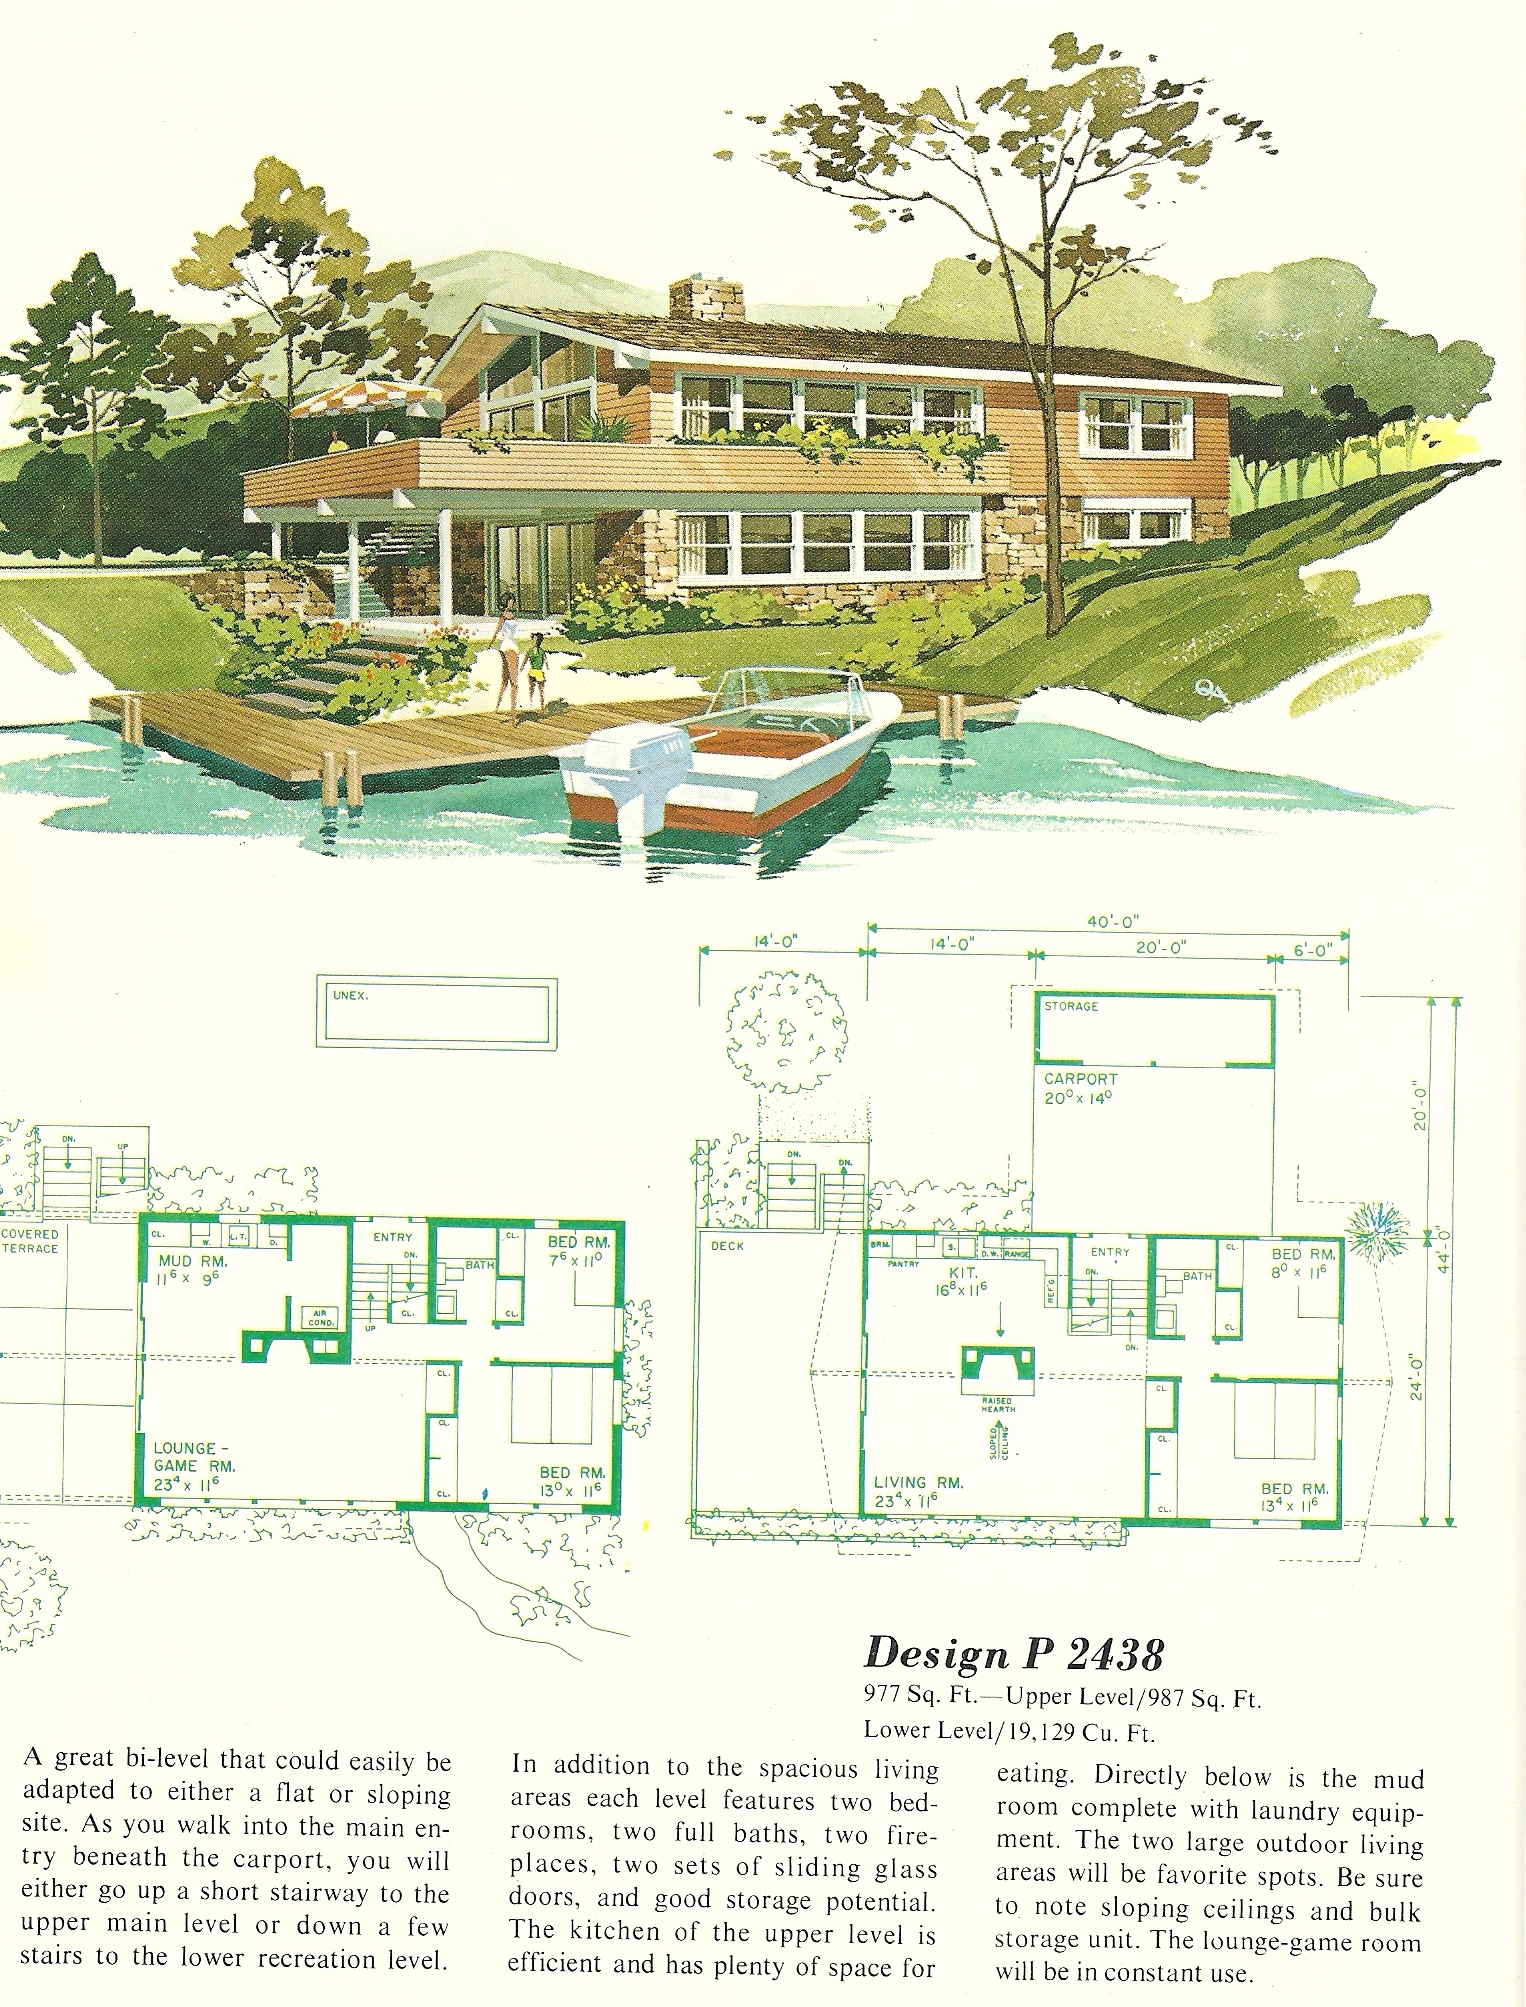 Vintage house plans vacation homes 2438 antique alter ego for Vacation house plans